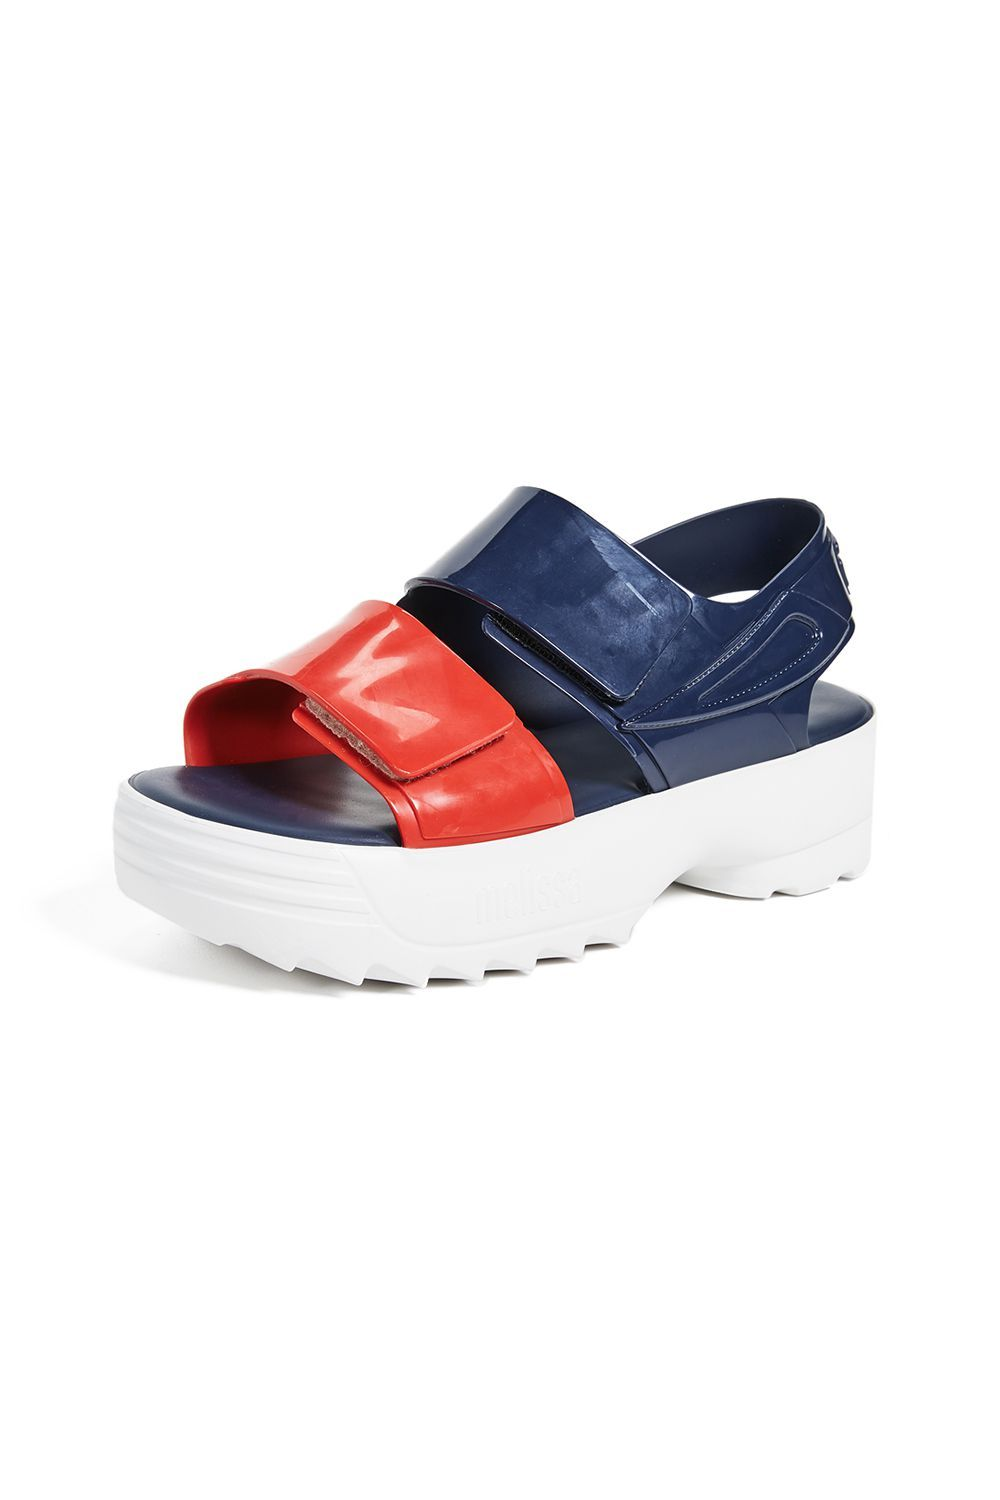 5a53191b6fe5 15 Best Sandals of 2019 - Comfortable